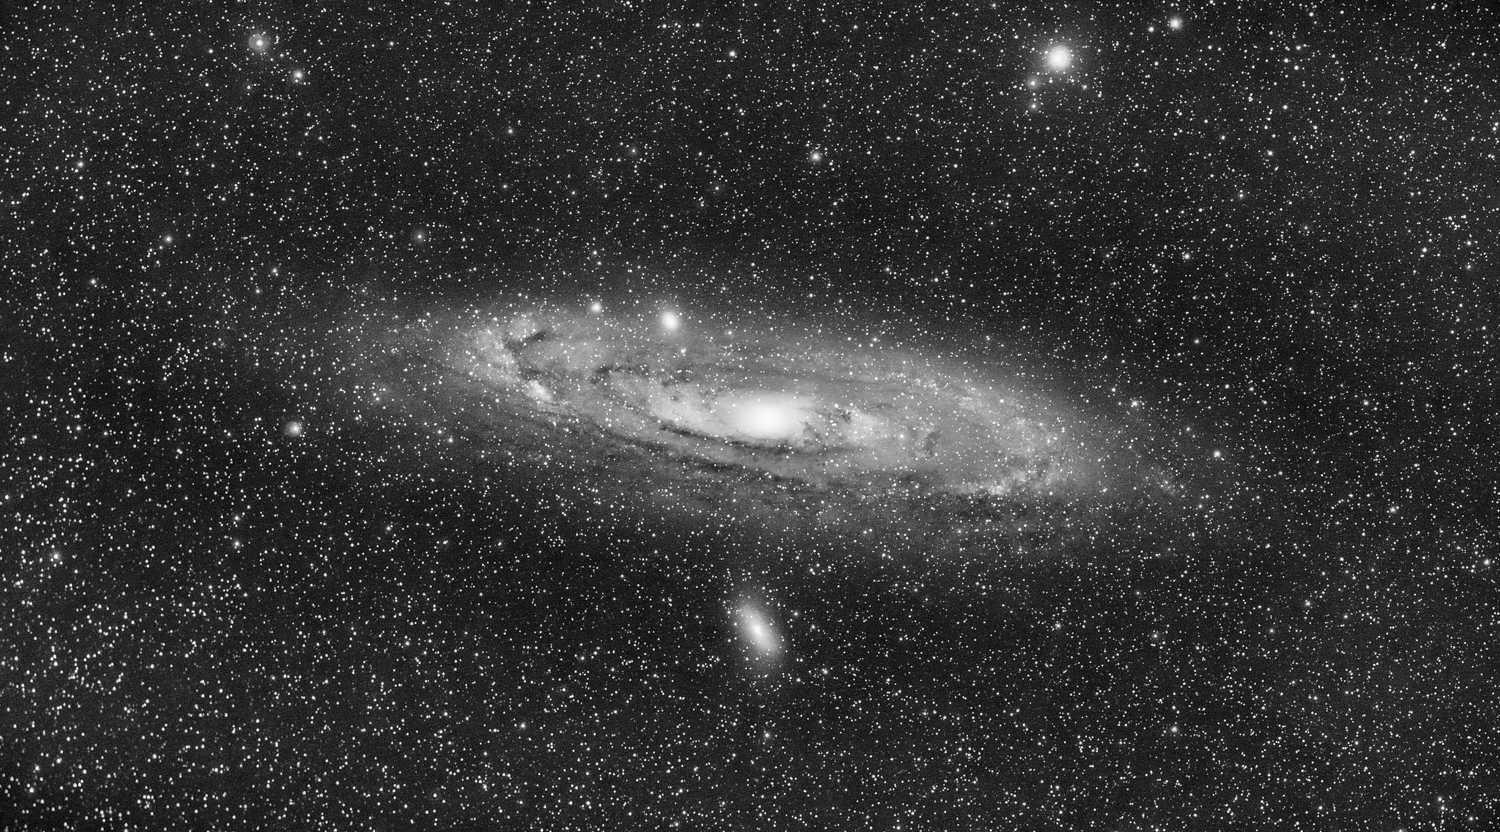 Photo: Andromeda Galaxy (M31) - 2014Nov23 (high contrast B&W picture mode)  Astro-Tech 65EDQ, Hutech HEUIB-II filter, full spectrum Sony A7S, Celestron VX mount, 40x30sec @ ISO 6400,  pre/postprocessed in PixInsight & Lightroom